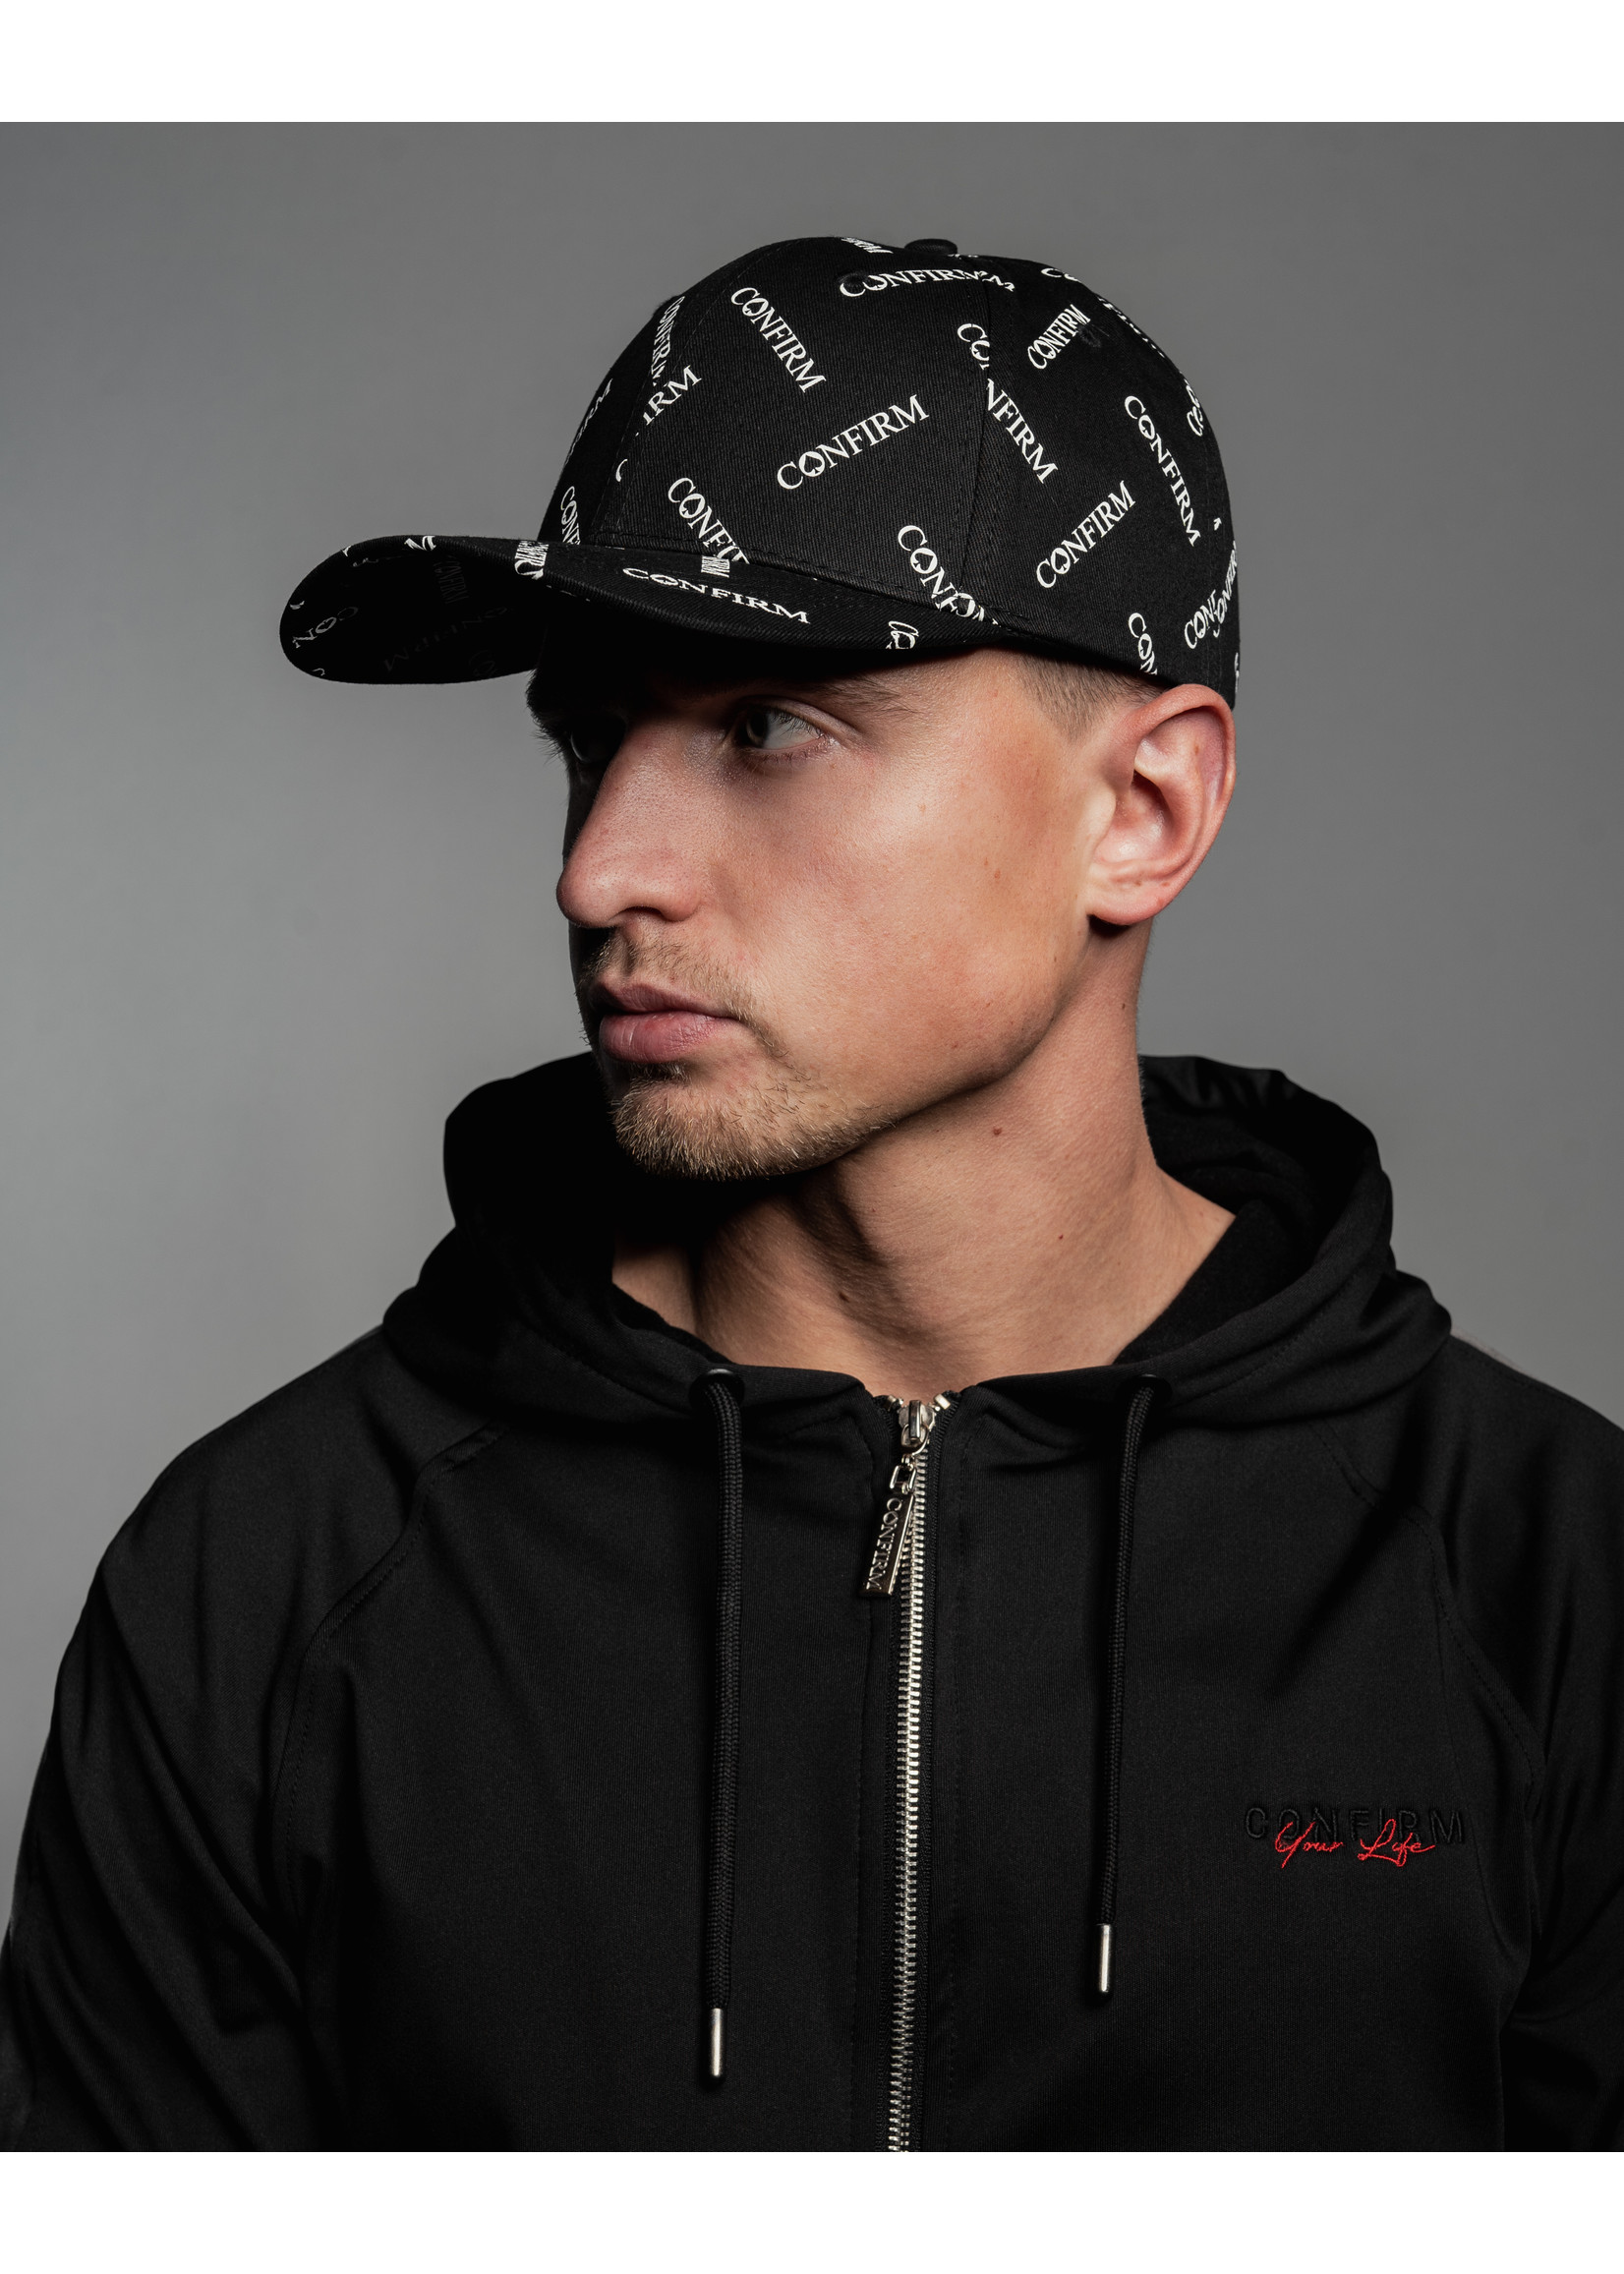 Confirm brand cap - all over